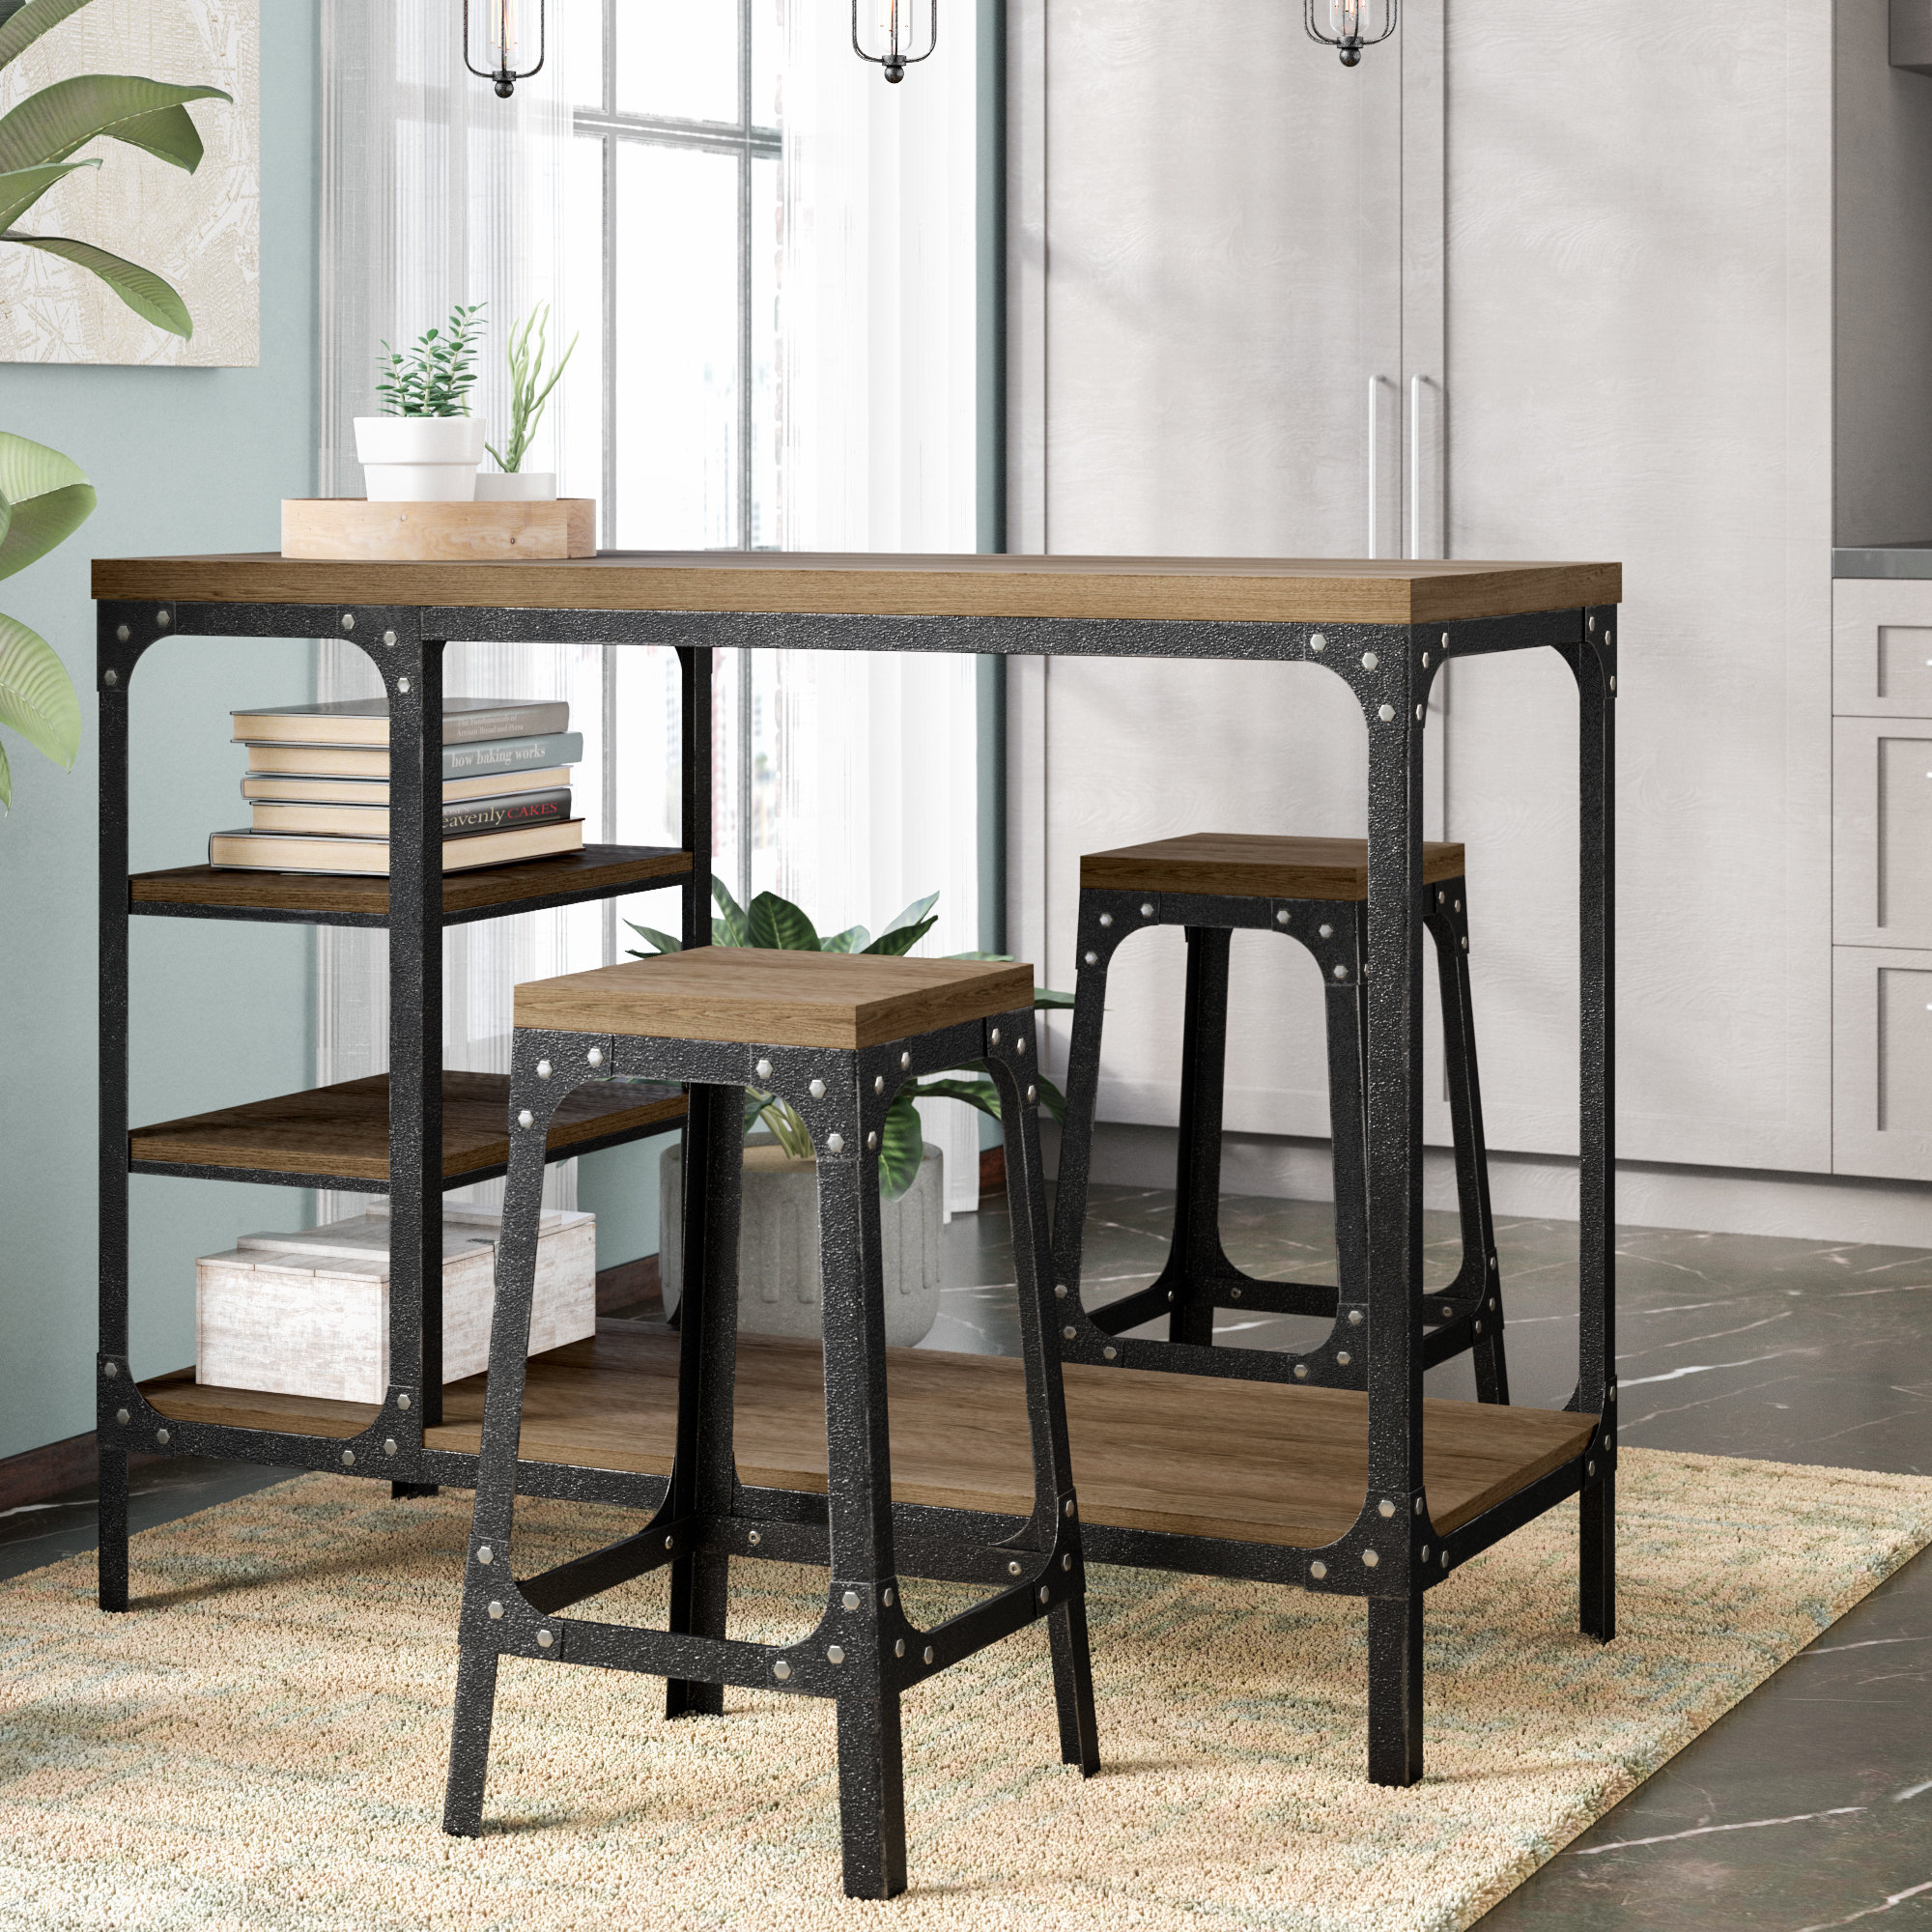 Williston Forge Terence 3 Piece Breakfast Nook Dining Set Intended For Latest Lillard 3 Piece Breakfast Nook Dining Sets (View 6 of 20)